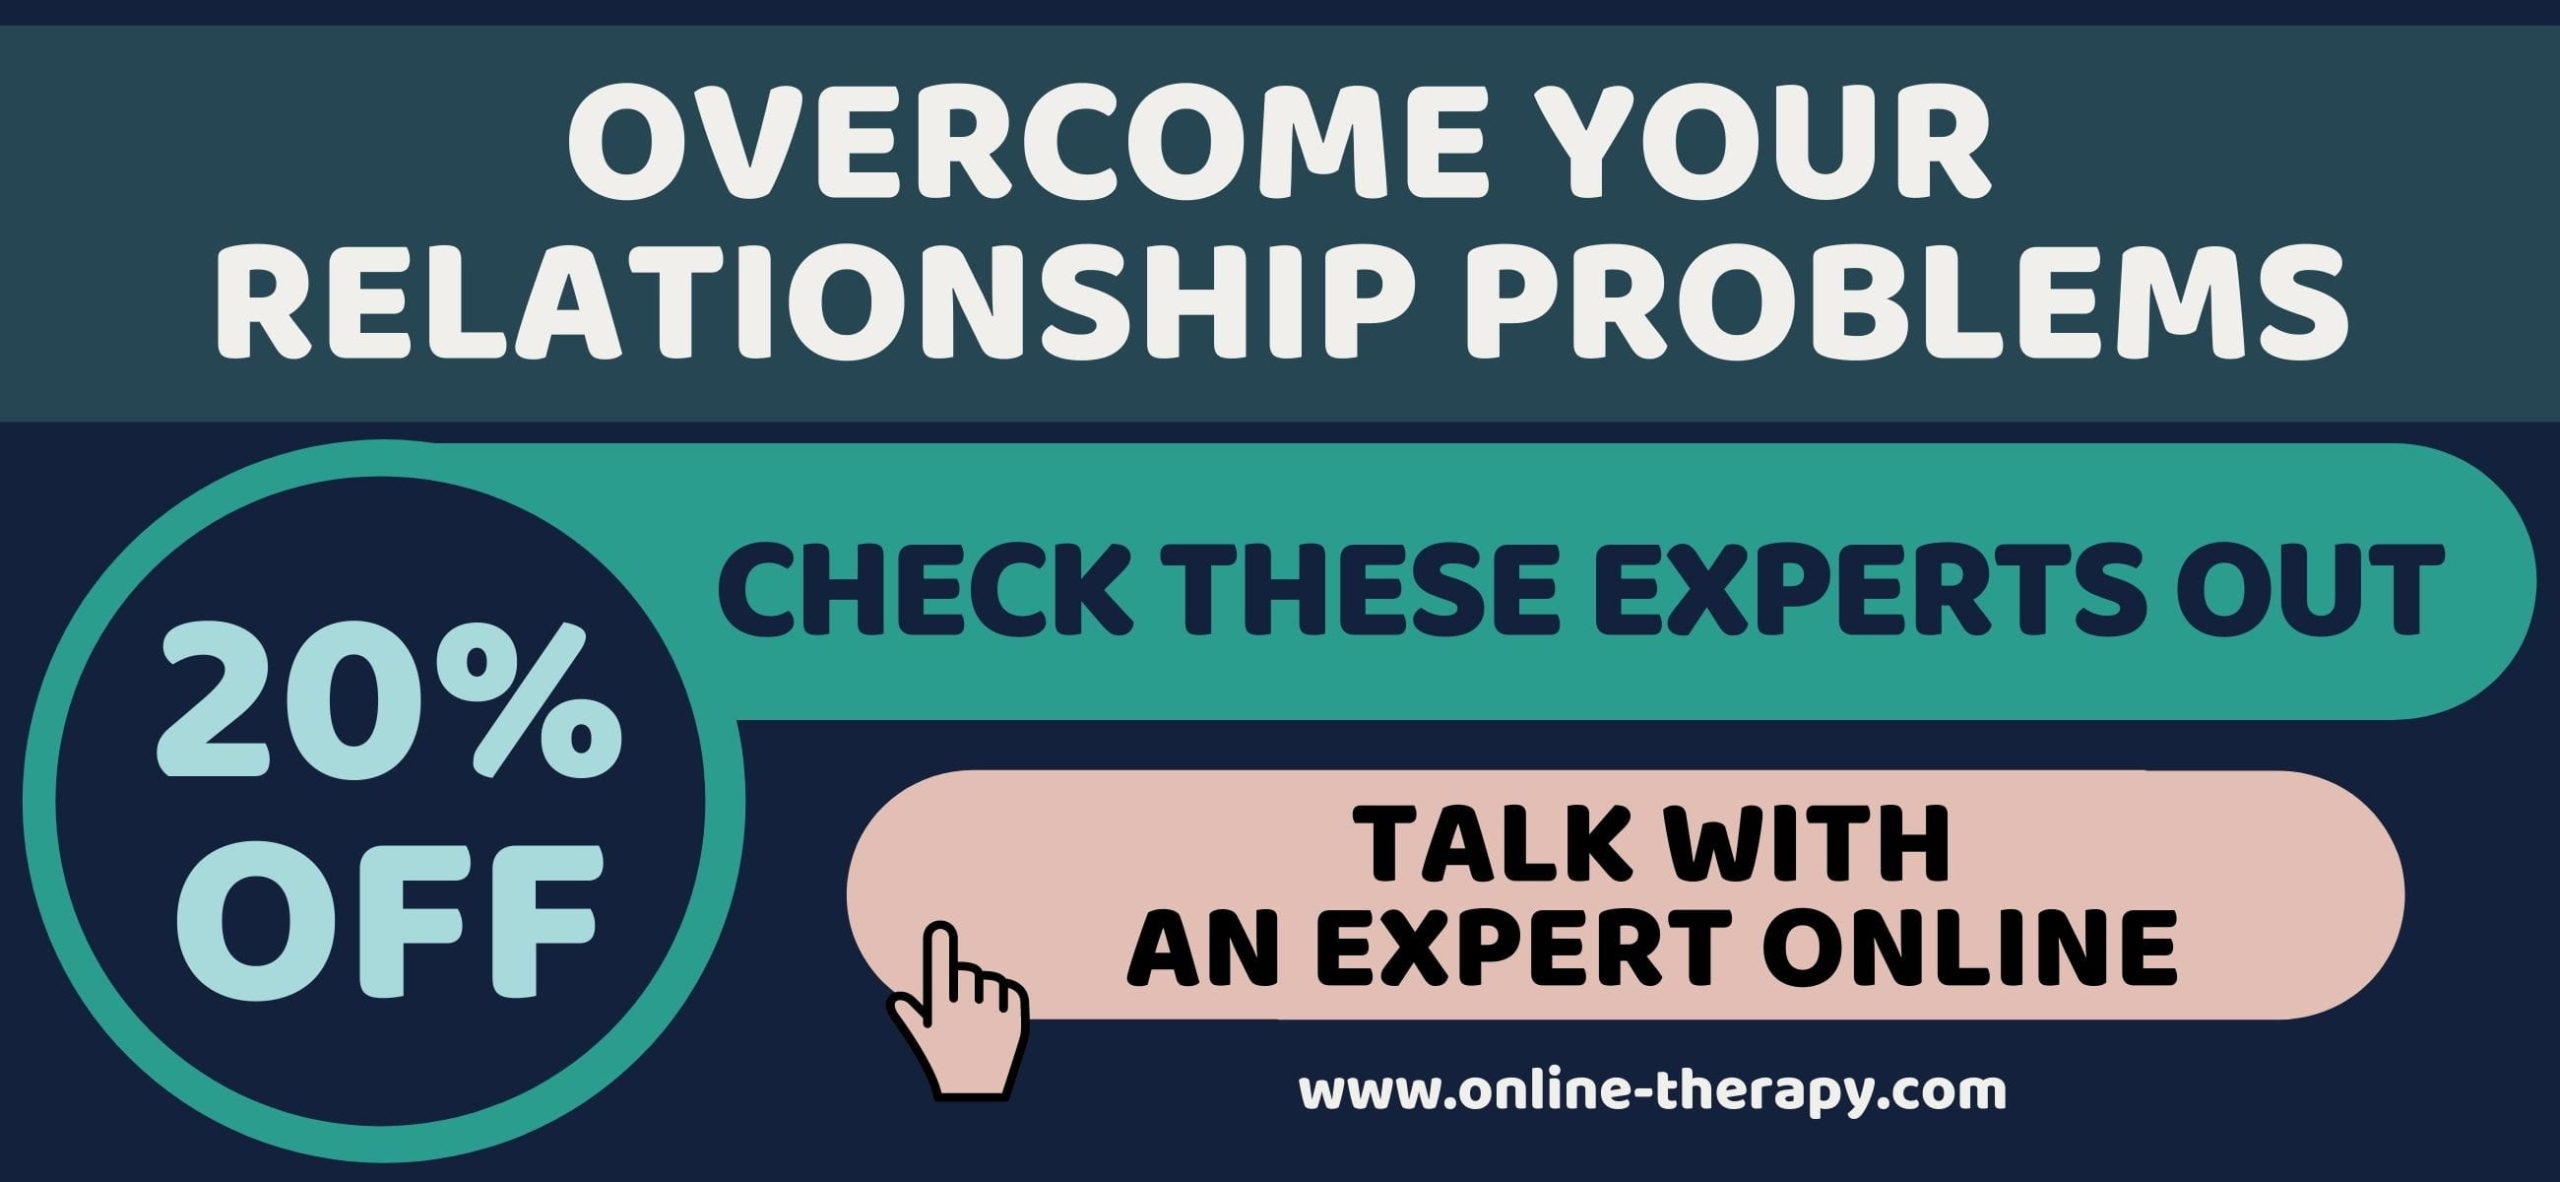 WTGM OVERCOME YOUR RELATIONSHIP PROBLEMS-min